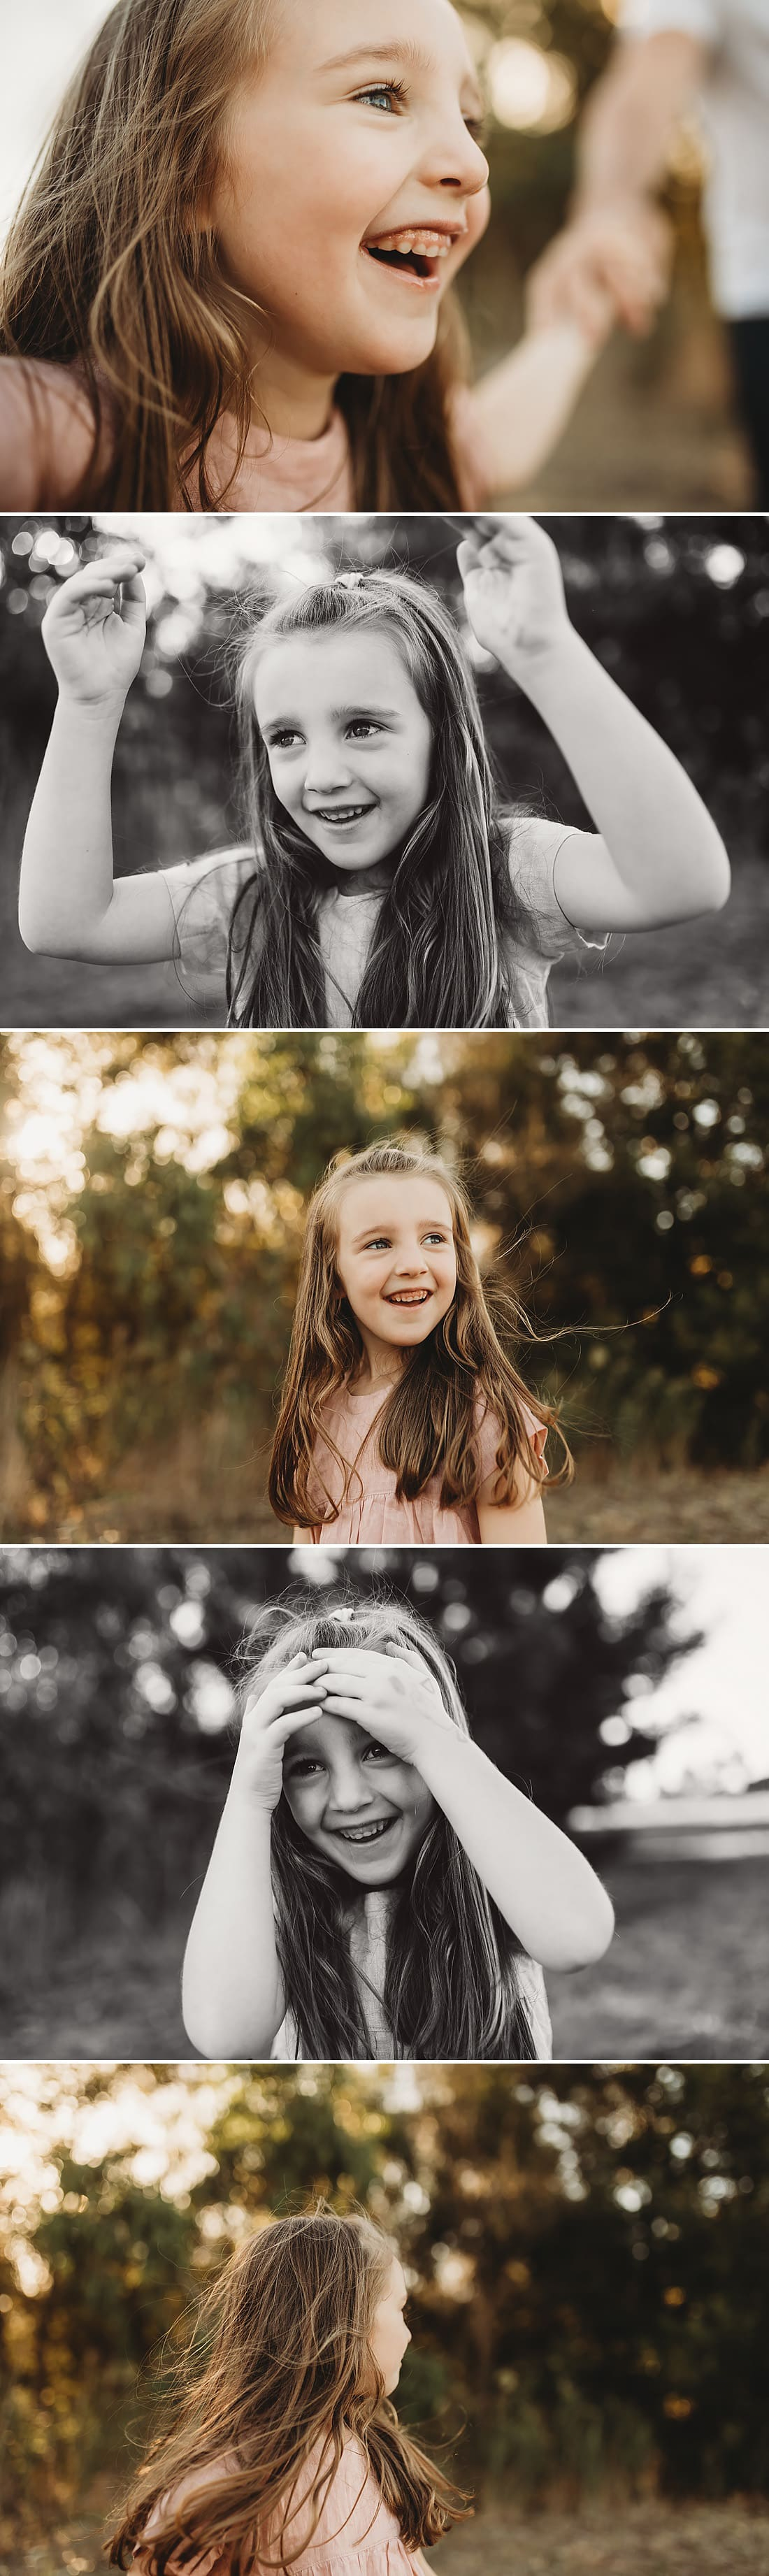 Lifestyle-Family_photography-Syndey-Sutherland-Shire